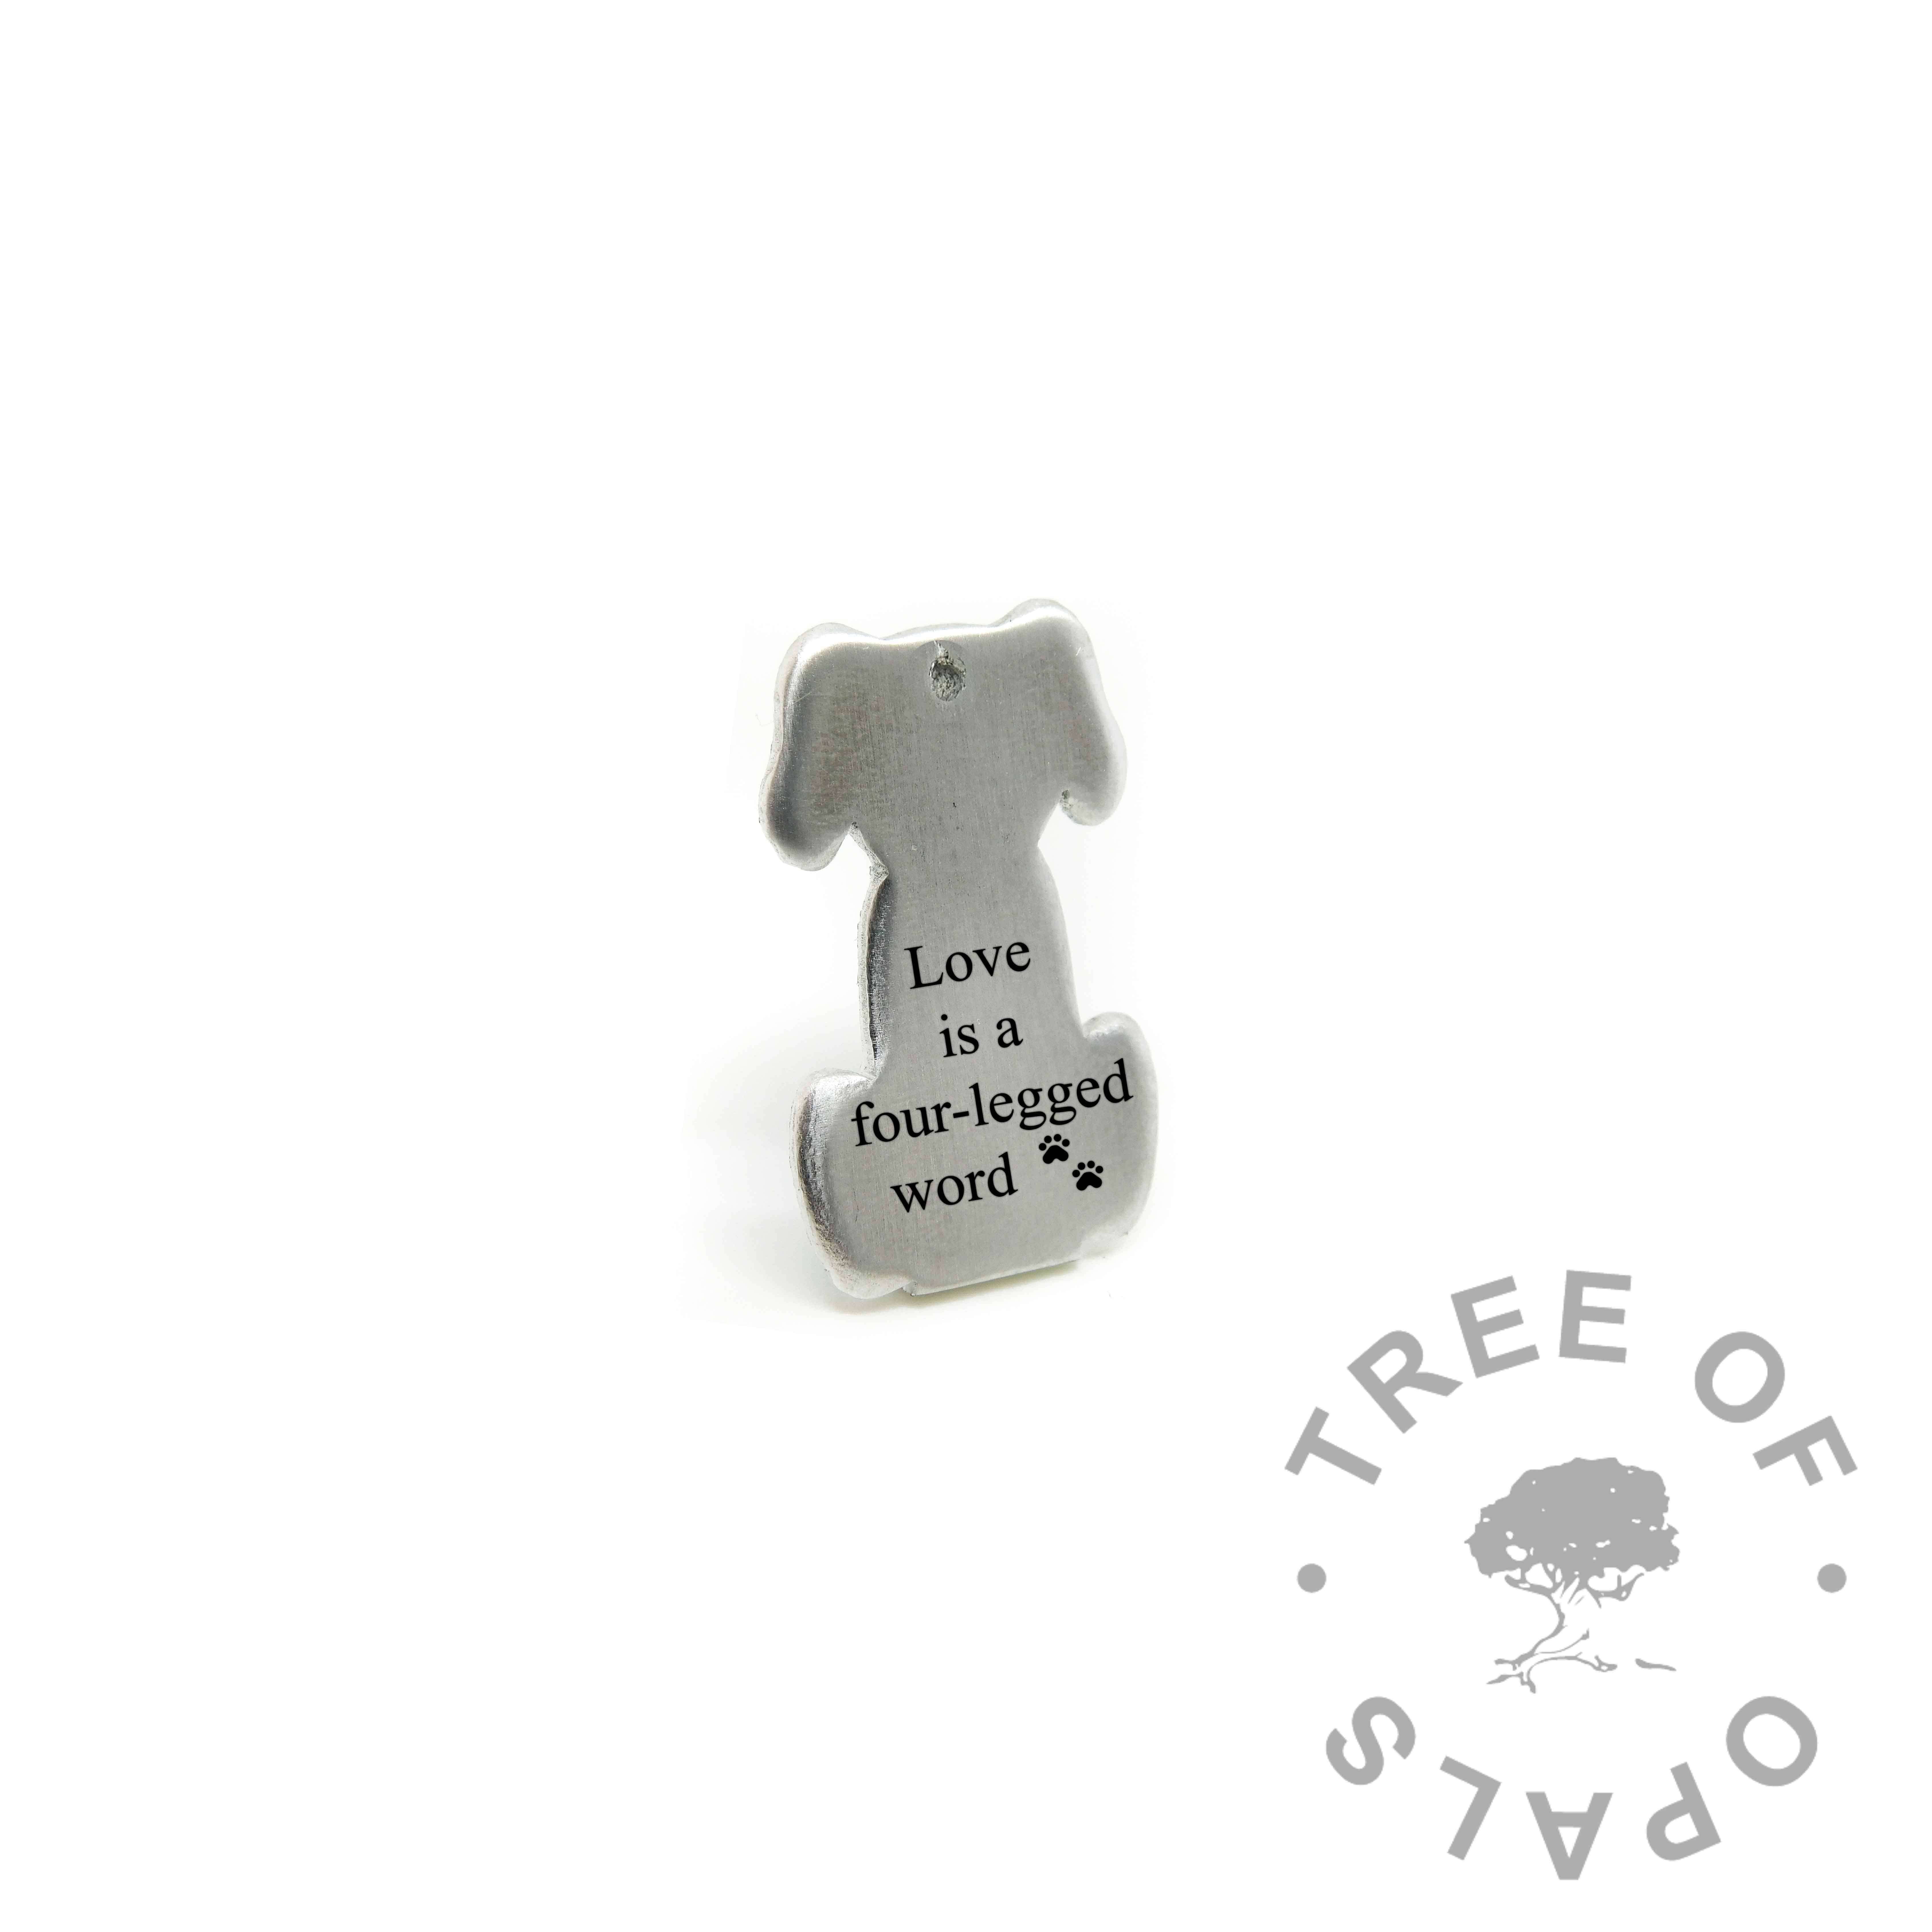 "dog necklace pendant engraved with ""Love is a four-legged word"" and double paw print emoji. Engravable cat licking its paw shape, solid eco Argentium silver (mockup)"